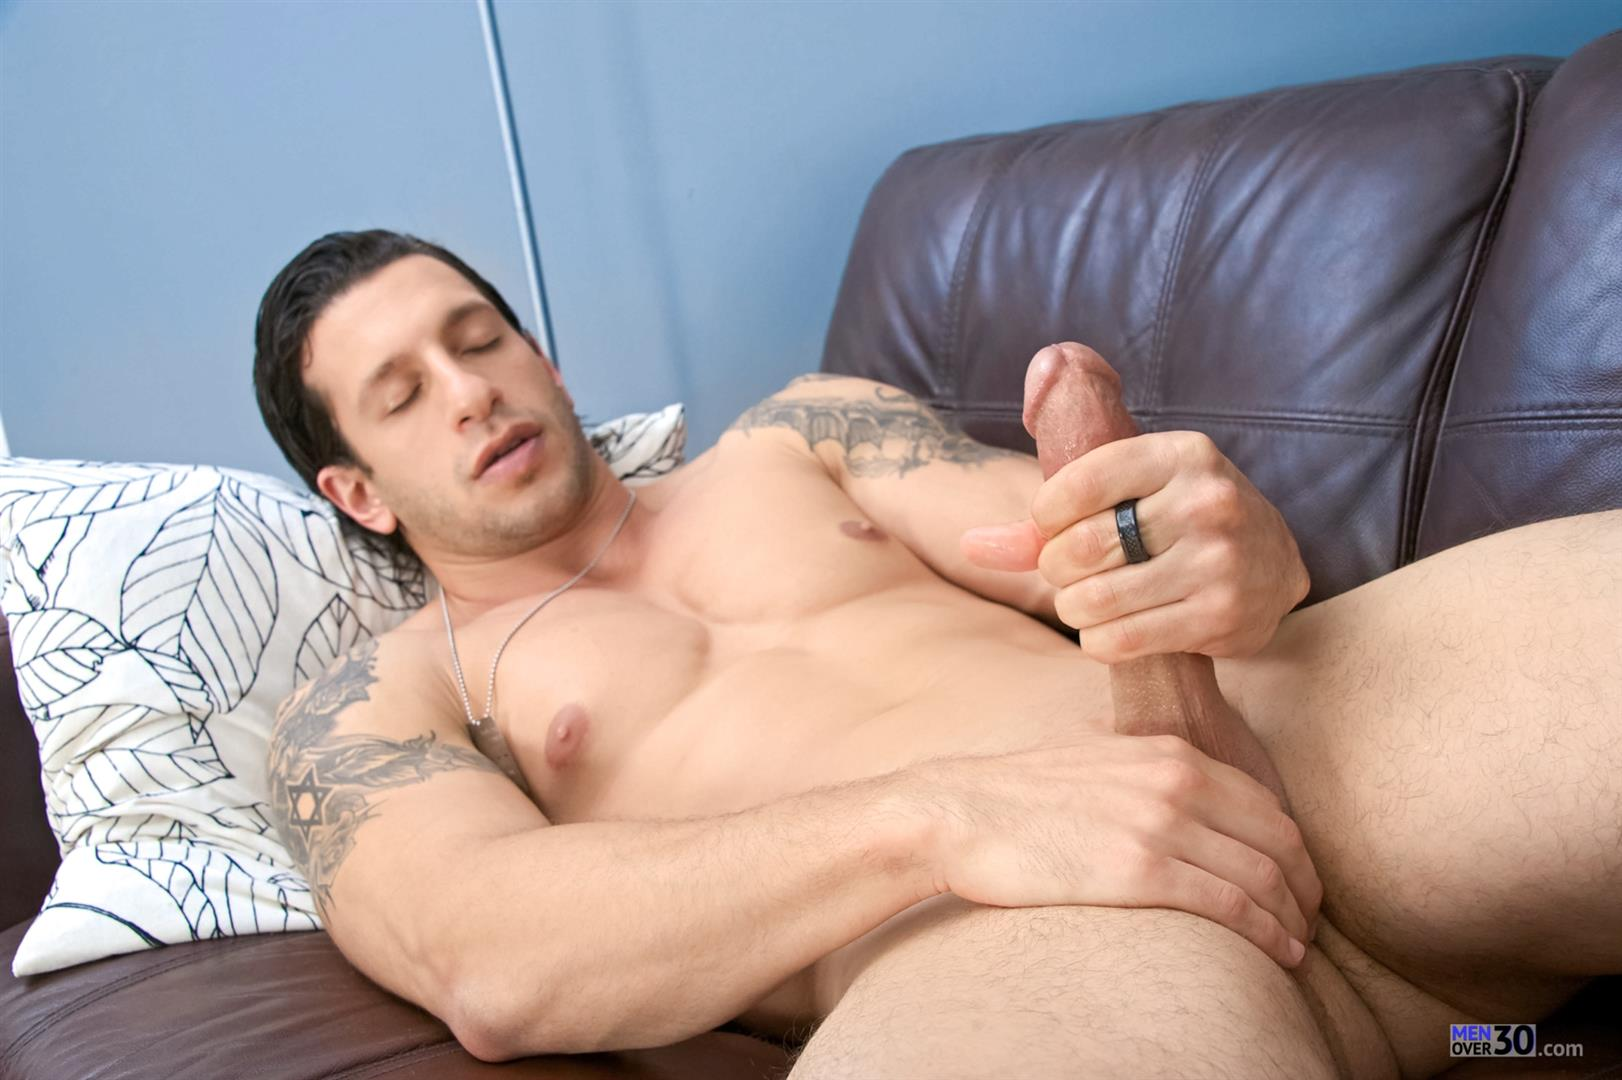 men over 30 – gay military fuck